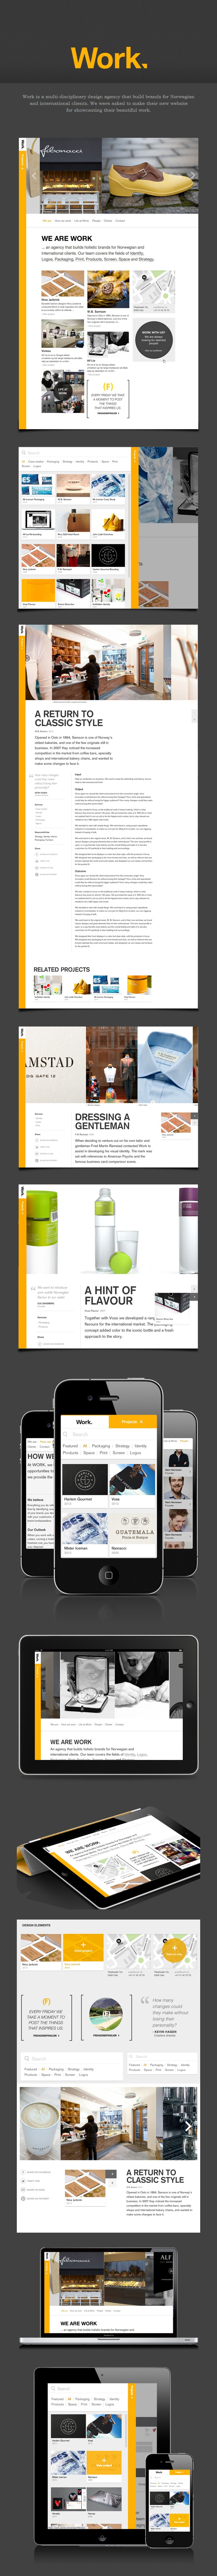 Work agency site / Unfold